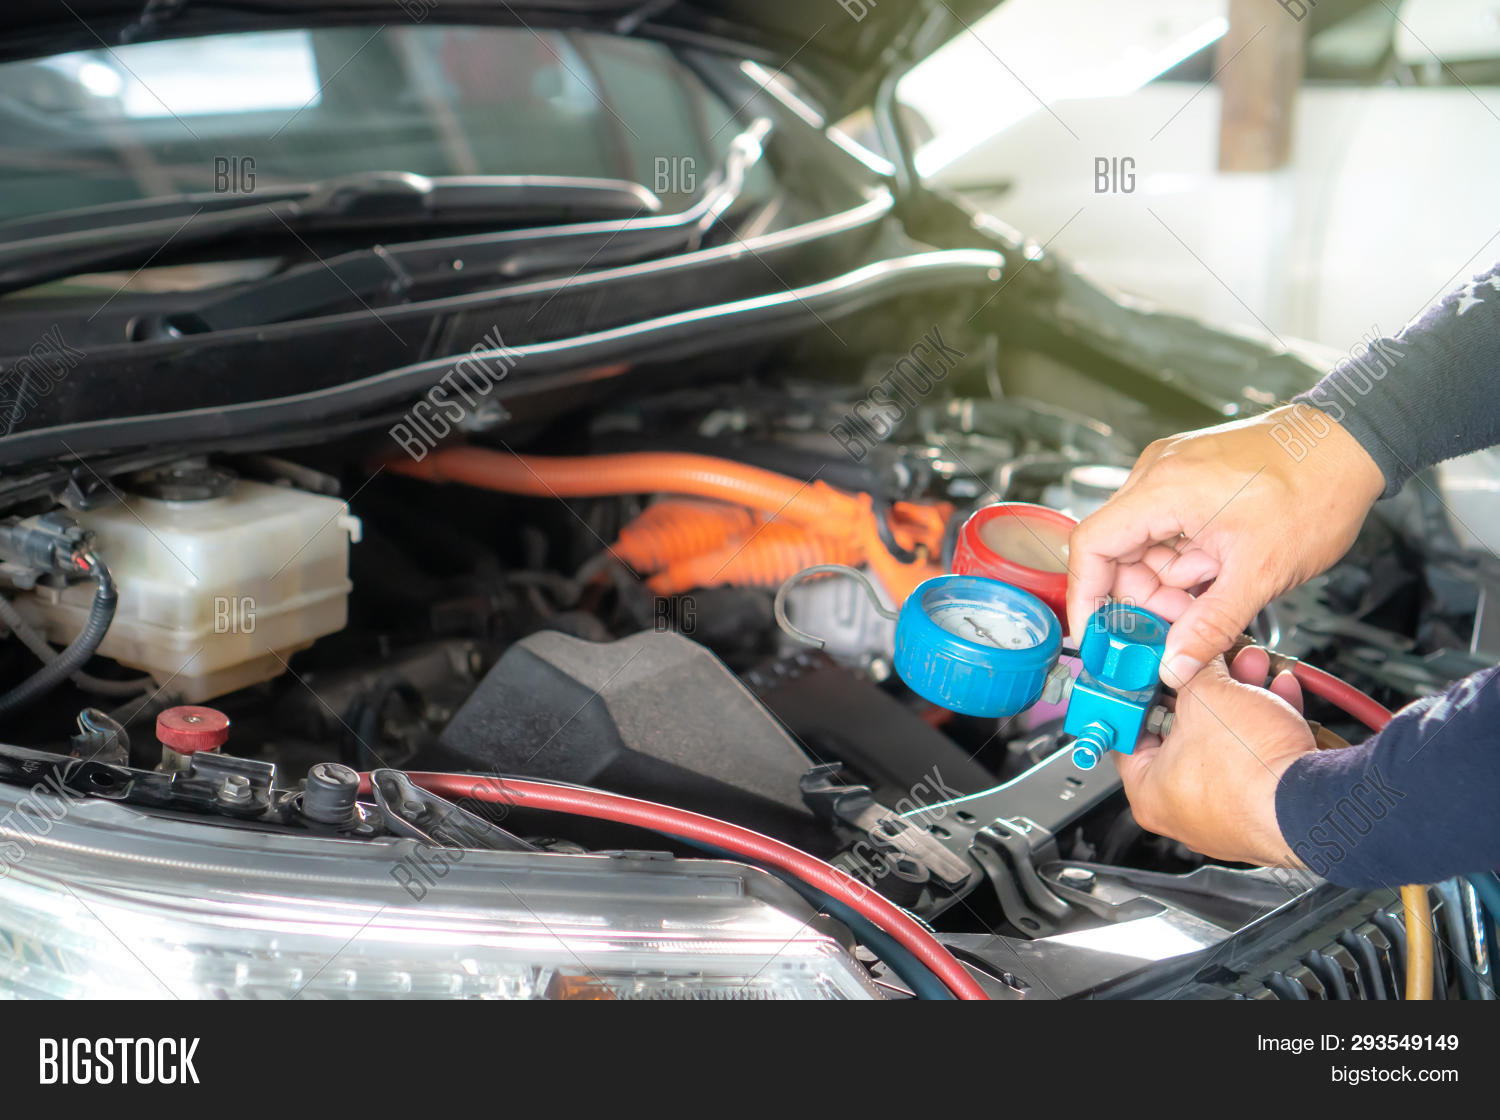 ac,air,auto,automobile,automotive,background,car,check,closeup,condition,conditioner,conditioning,cool,engine,equipment,filling,fixed,freon,garage,hand,indicator,industry,maintenance,man,mechanic,meter,monitoring,pipe,pressure,recharge,refrigerant,repair,service,system,technology,tool,transportation,unit,vehicle,white,work